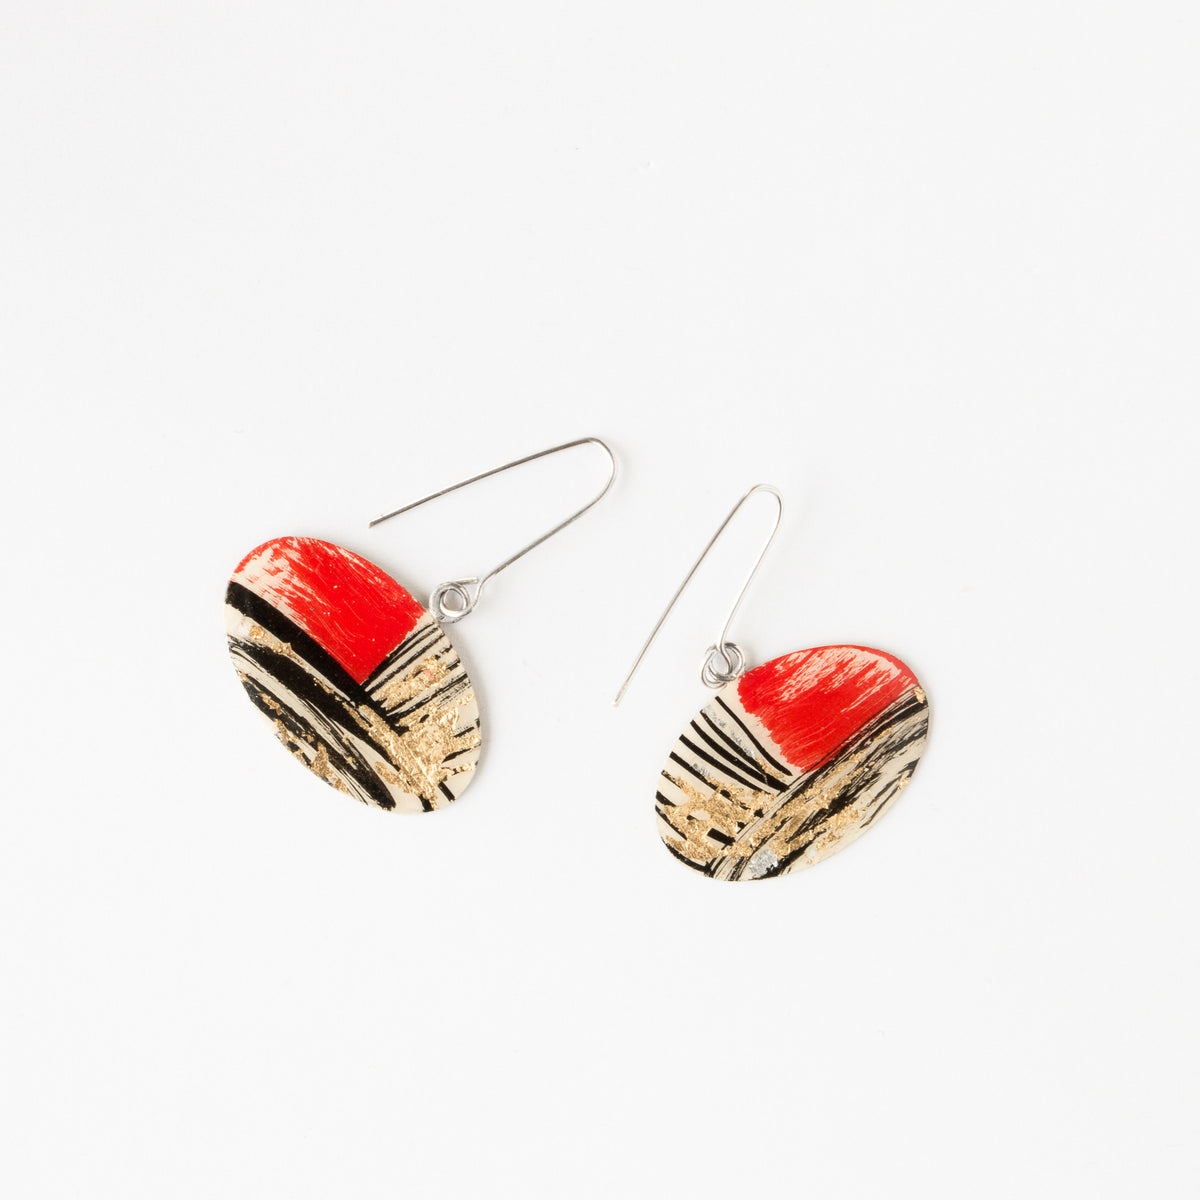 635-2 - Oval Handmade Earrings Painted on Brass - Sold by Chic & Basta